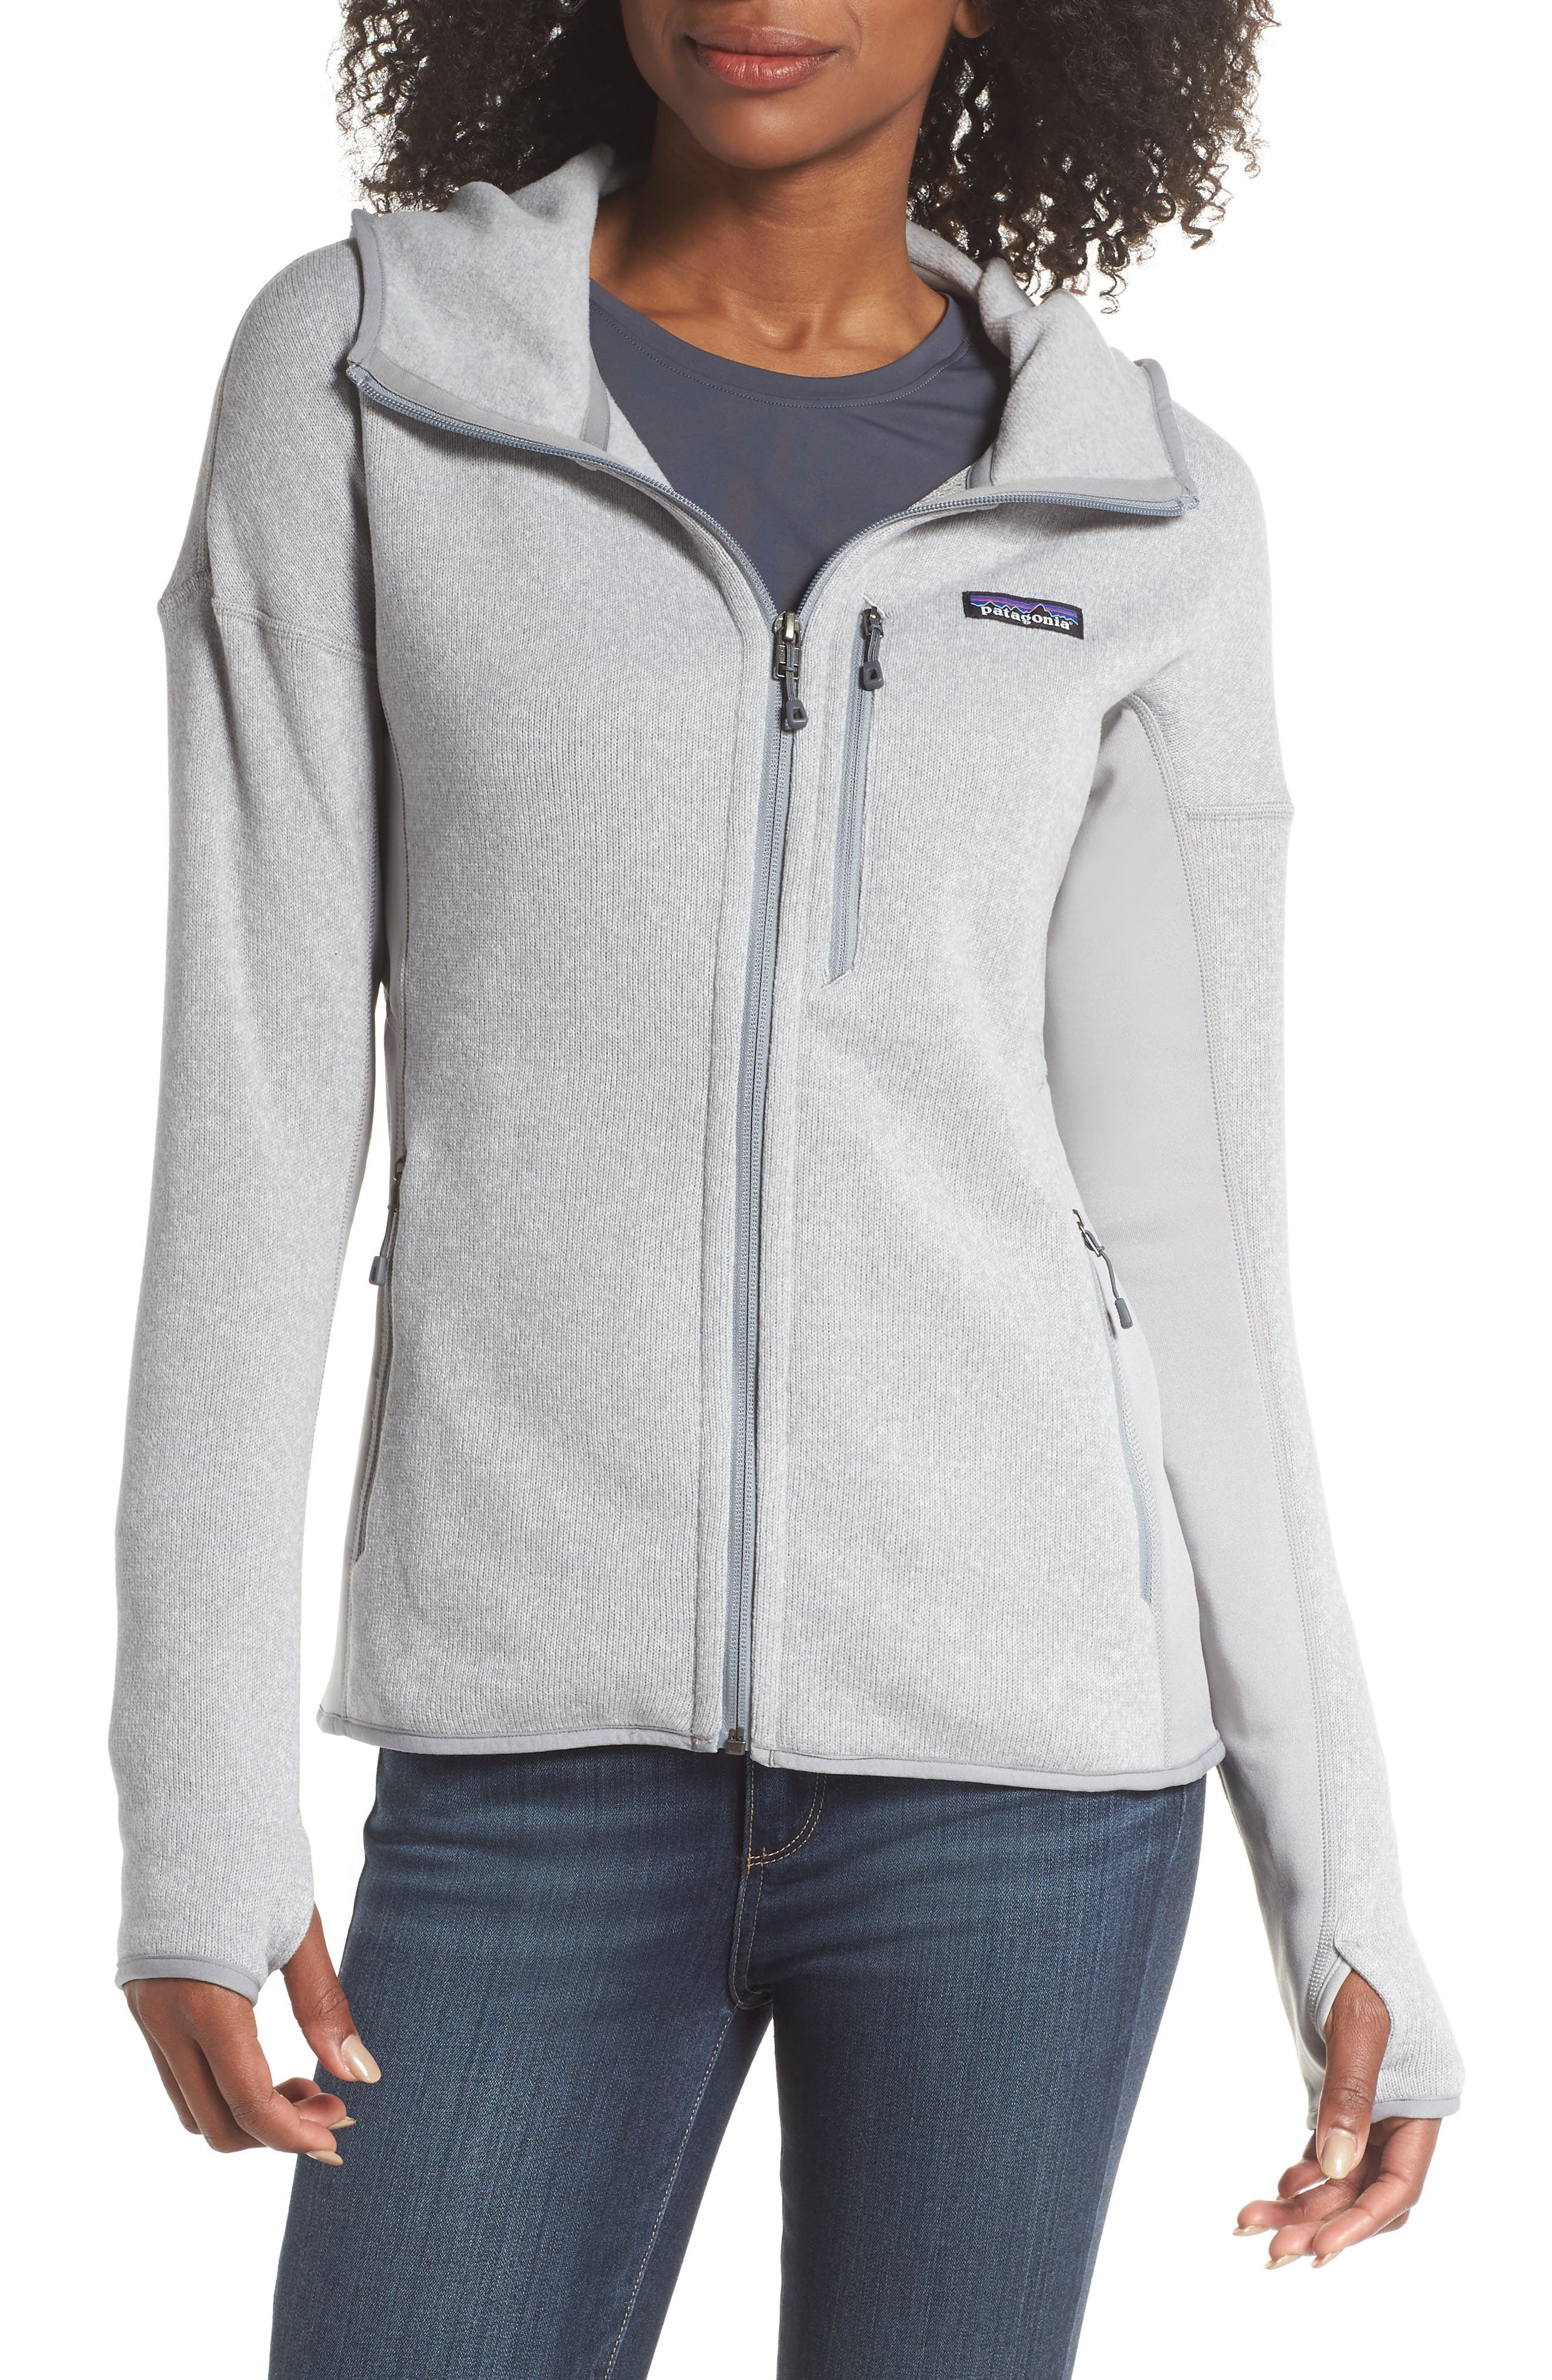 Performance Better Sweater Hoodie,                             Main thumbnail 1, color,                             DRIFT GREY